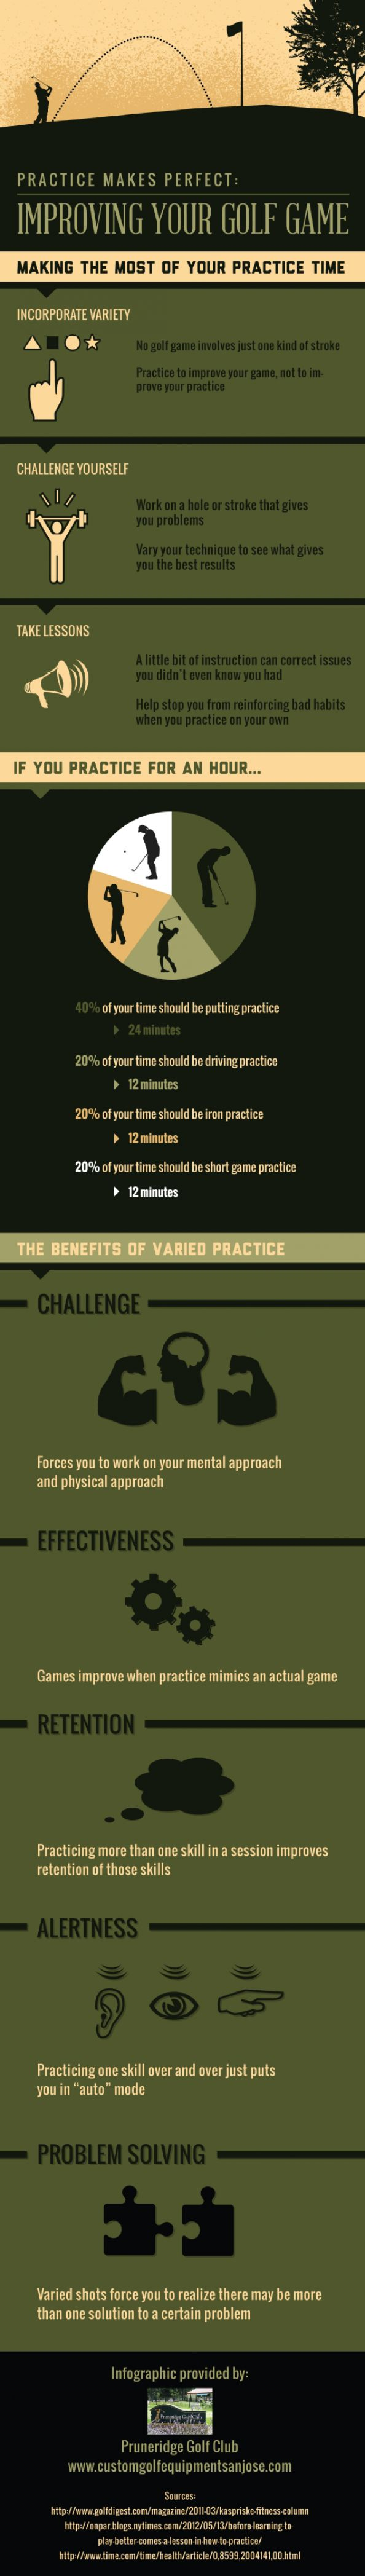 Practice Makes Perfect: Improving Your Golf Game [Infographic] - Oct 4:  National Golf Day